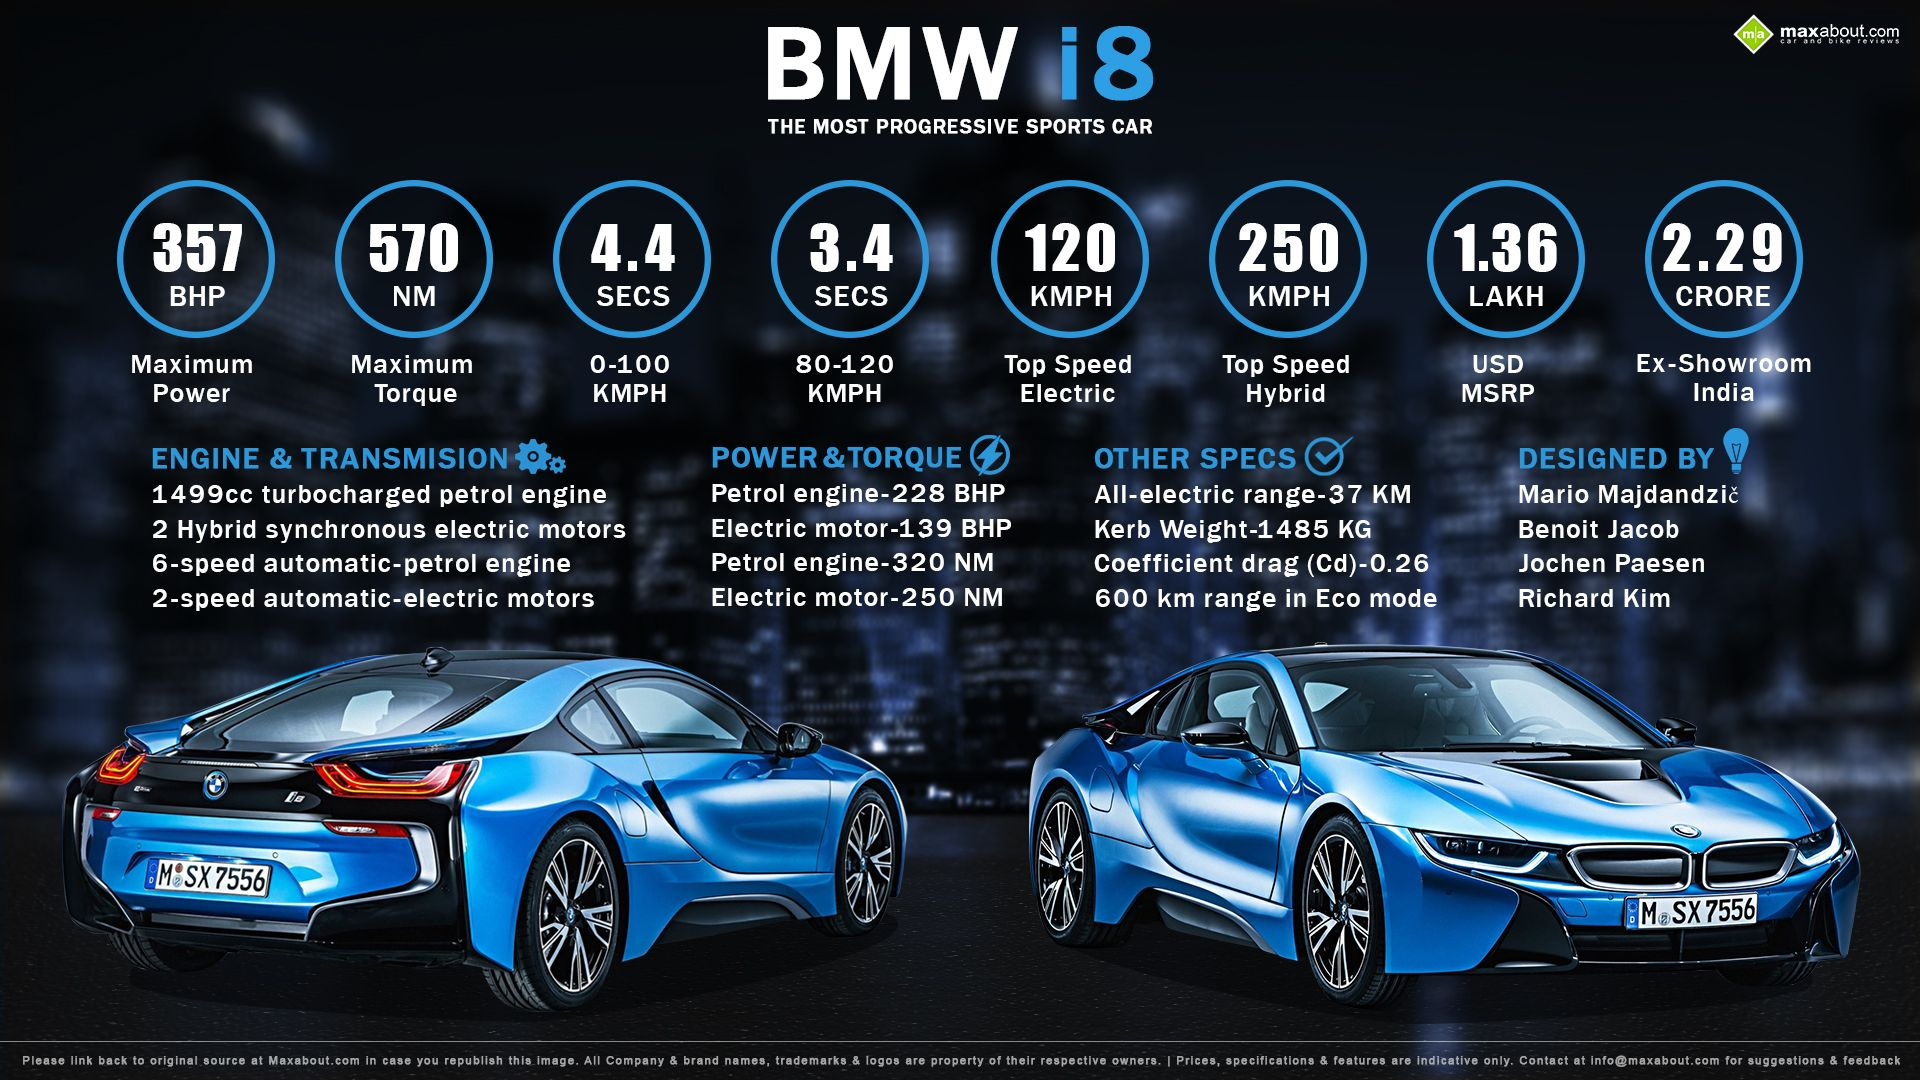 BMW i8 Hybrid Sports Car Launched in India at INR 2.29